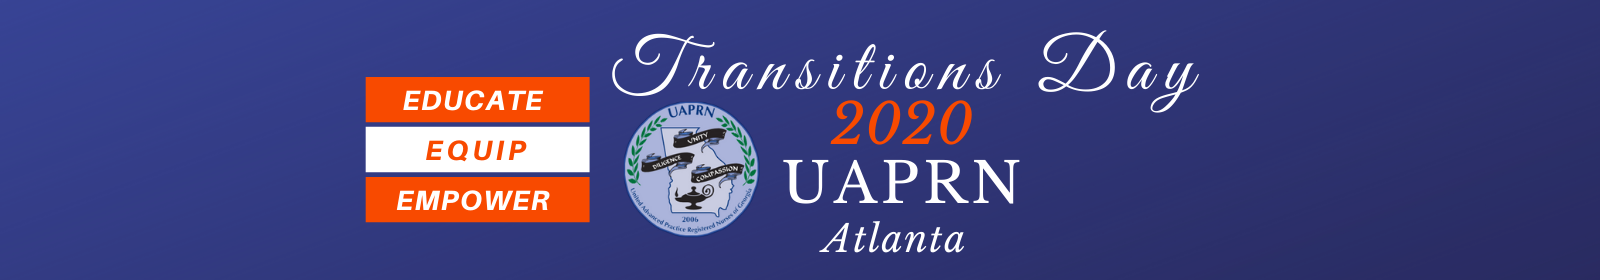 7th Annual Transitions Day 2020